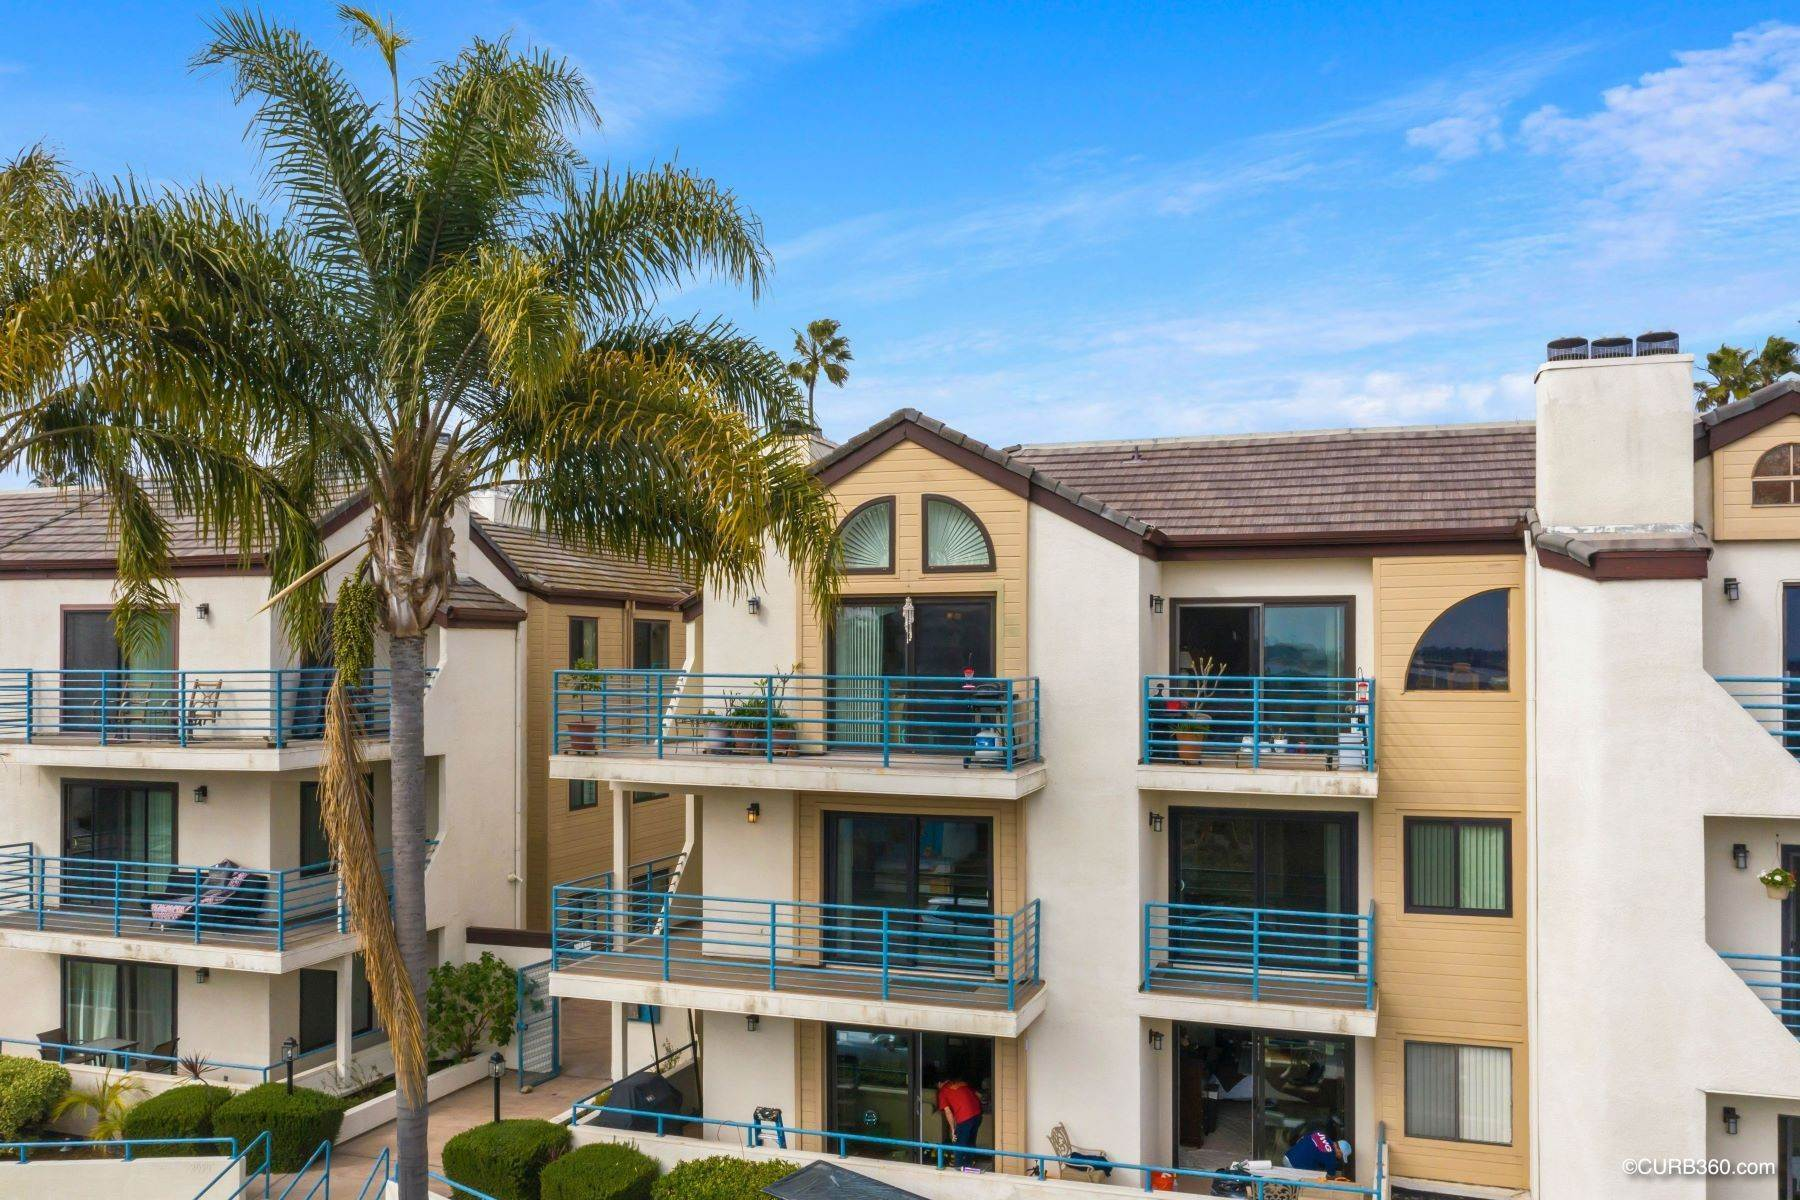 Condominiums for Sale at 2050 Pacific Beach Drive, Unit 201, San Diego, CA 92109 2050 Pacific Beach Dr Unit 201 San Diego, California 92109 United States